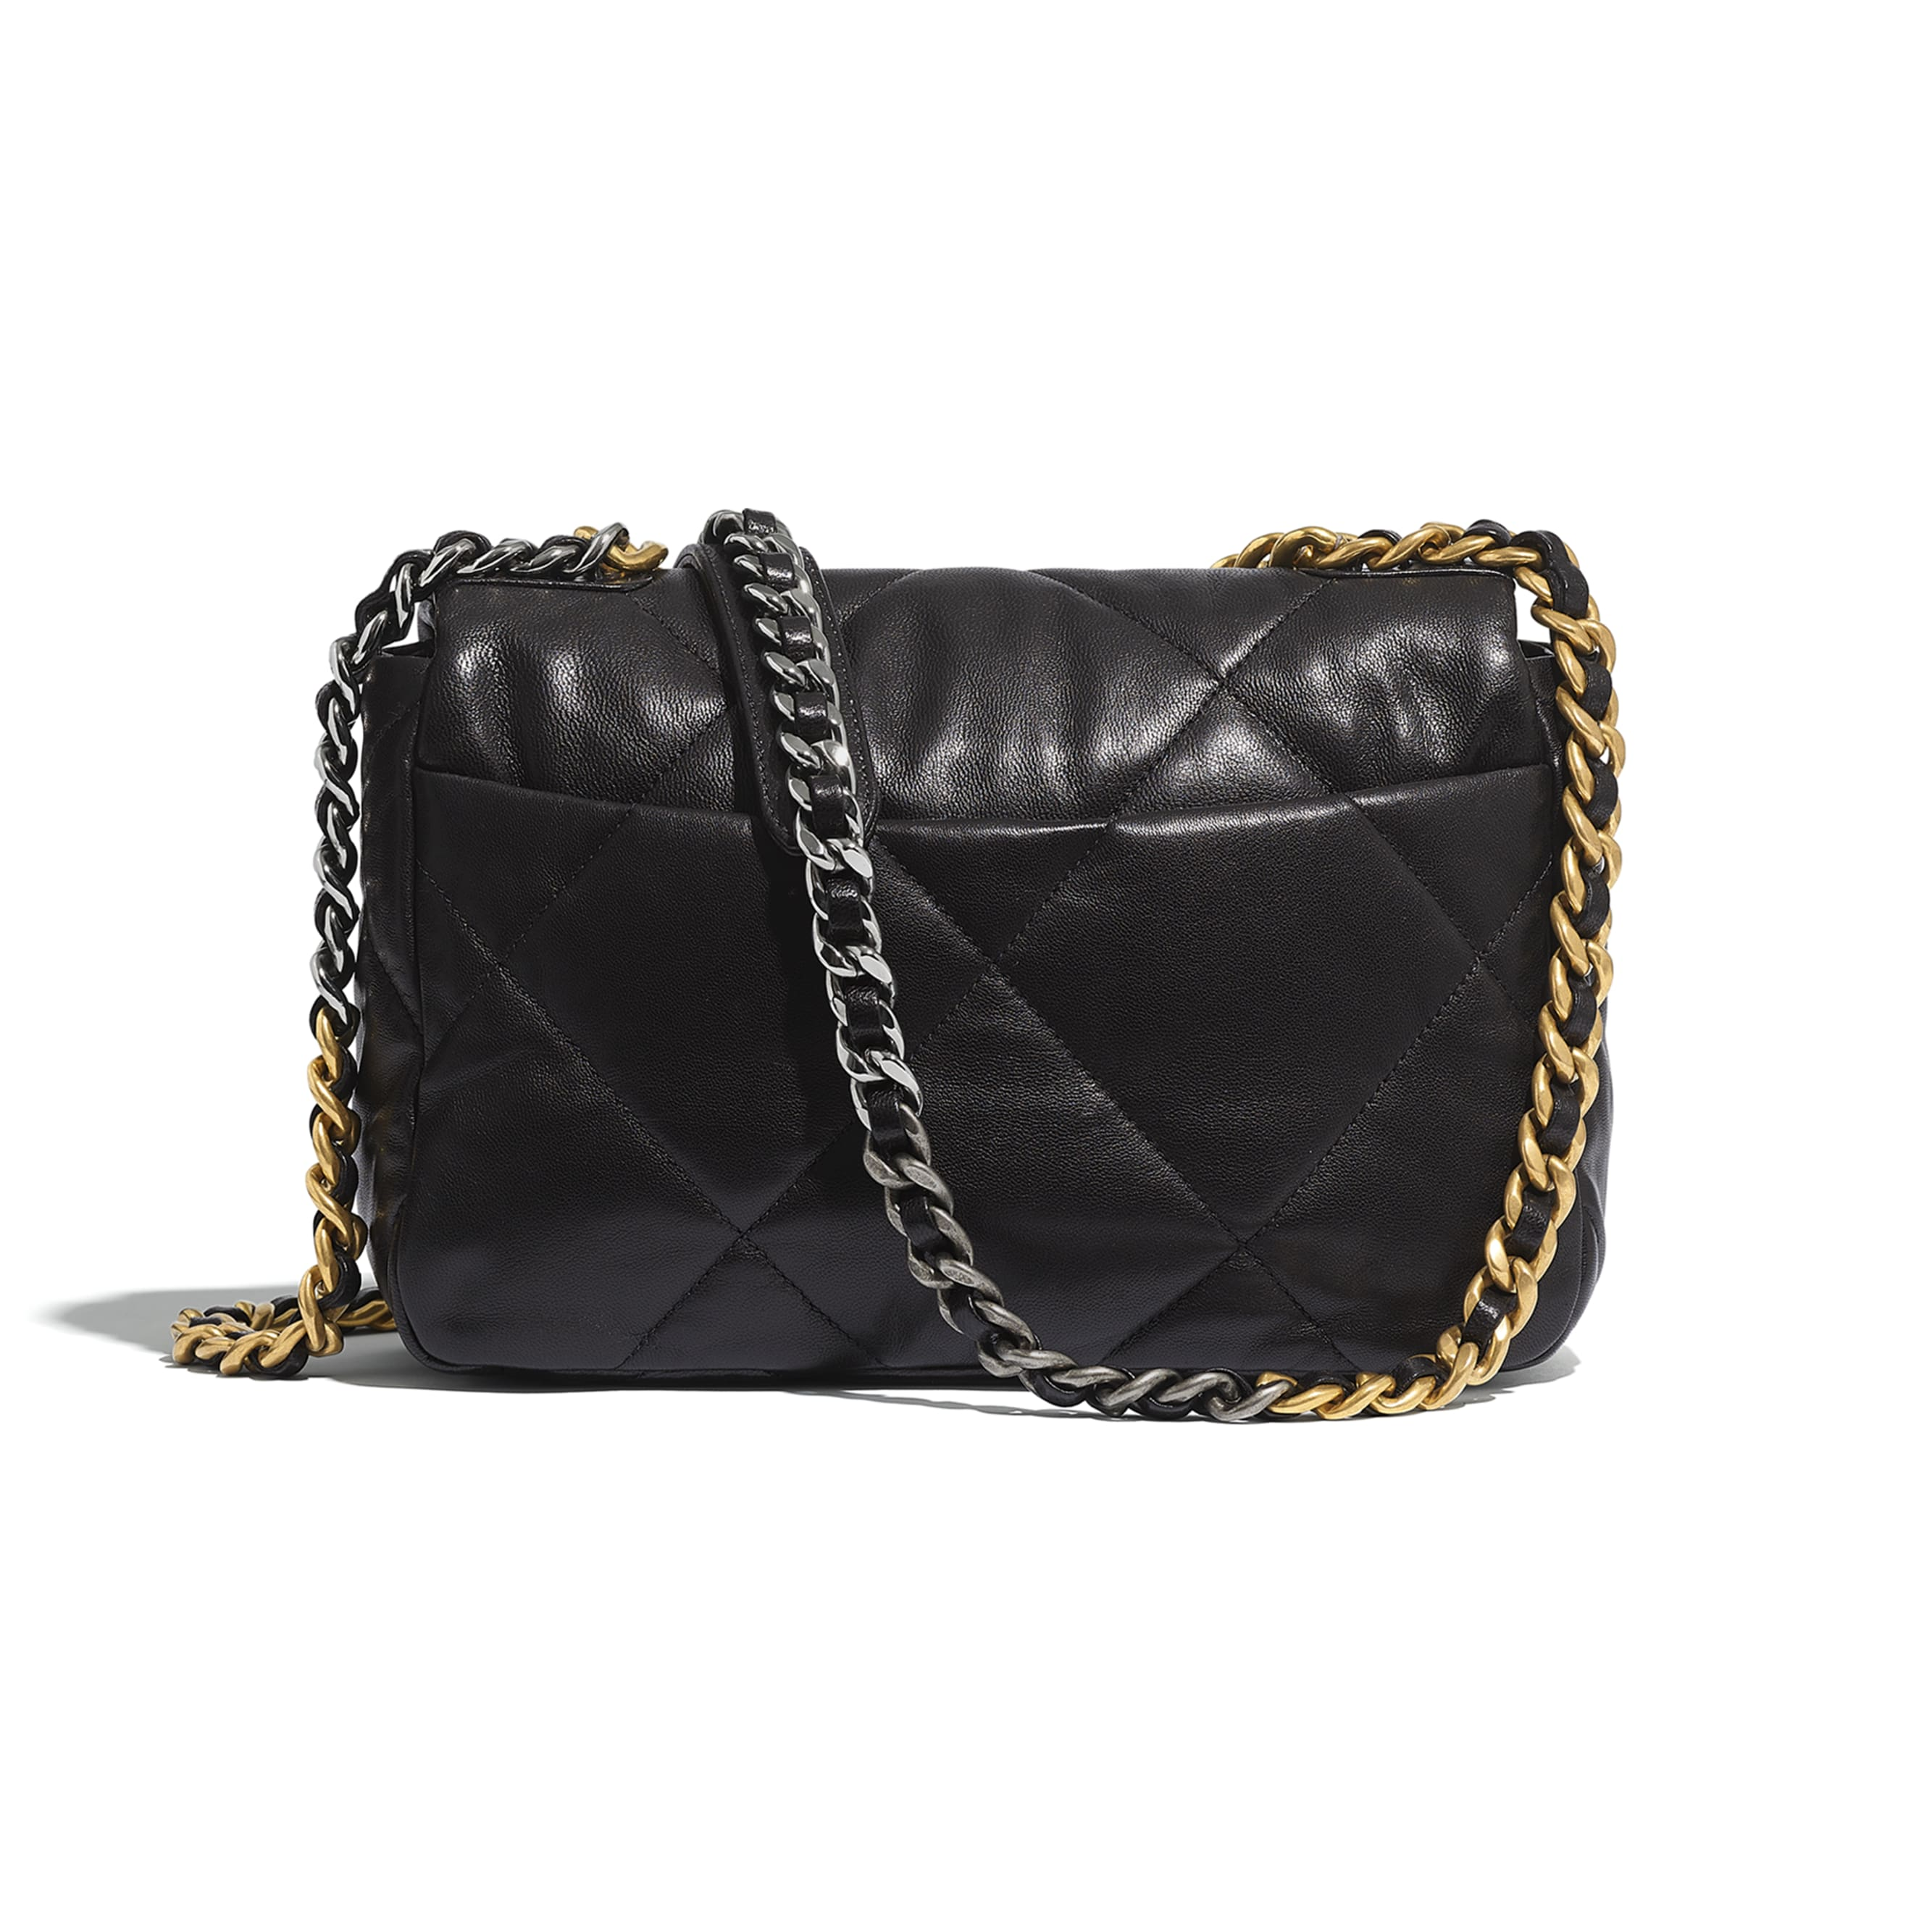 CHANEL 19 Flap Bag - Black - Lambskin, Gold-Tone, Silver-Tone & Ruthenium-Finish Metal - Alternative view - see standard sized version